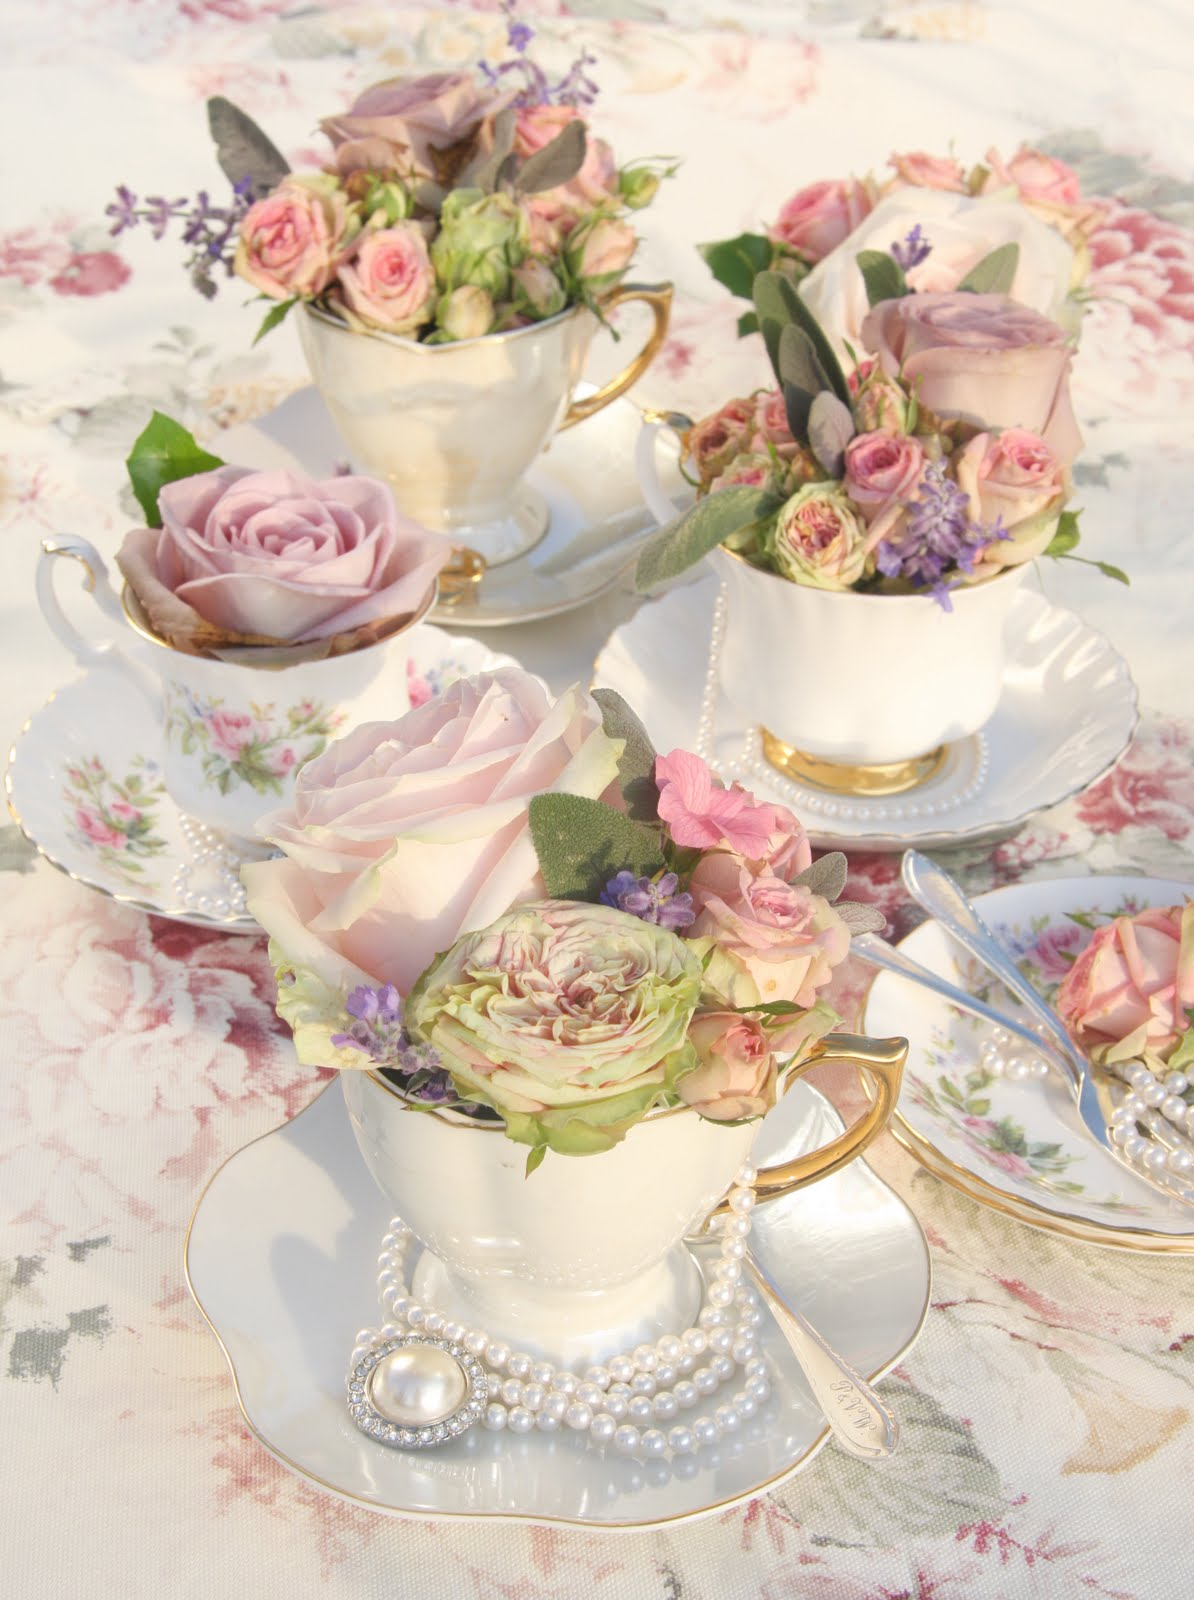 Tea Cup Flower Arrangement 1194 x 1600